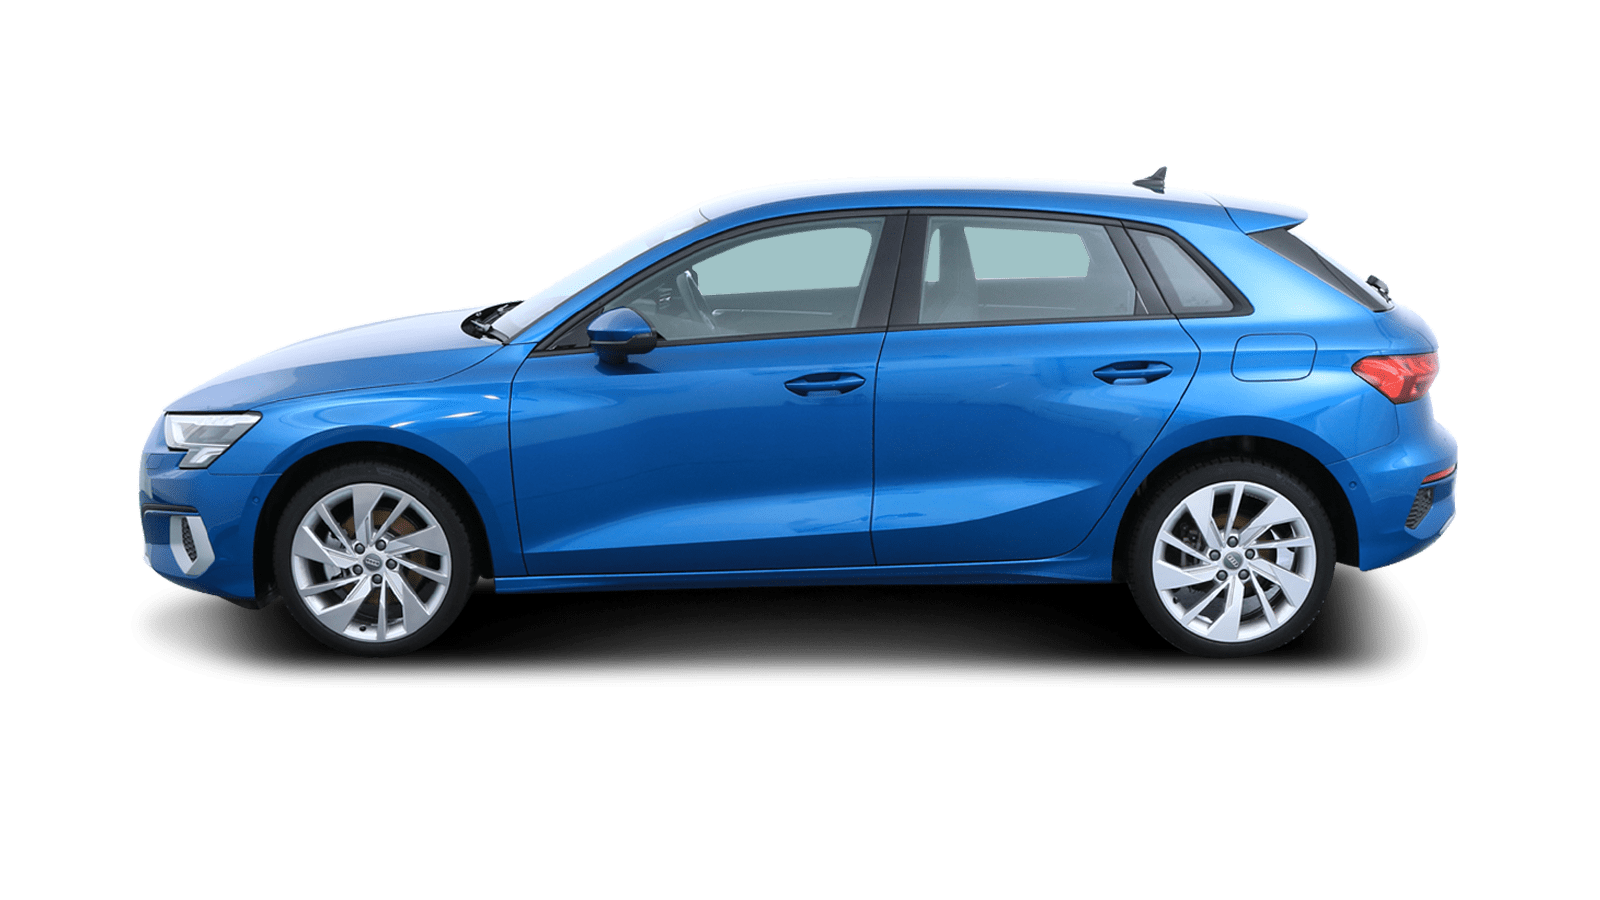 Audi A3 Sportback Blue back - Clyde car subscription